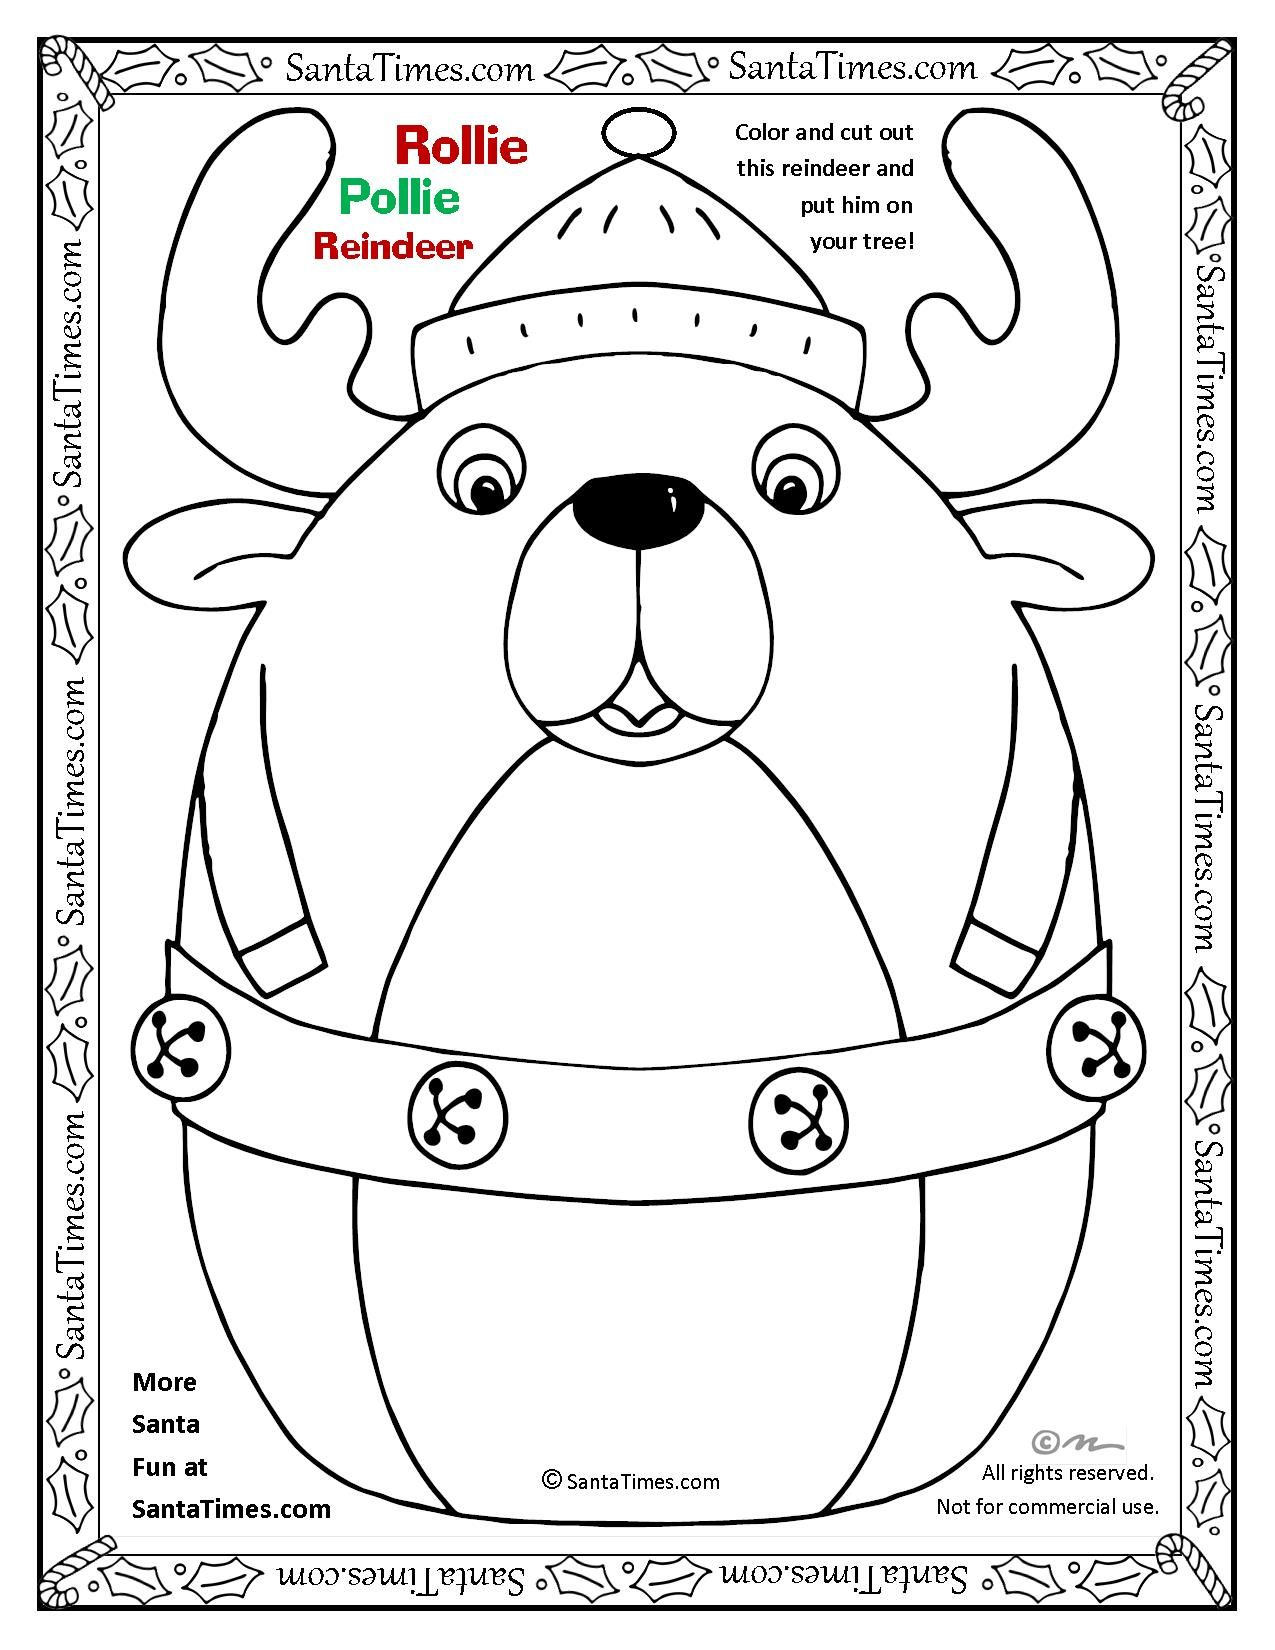 Christmas coloring page printouts - Rollie Pollie Santa Coloring Page Printout More Fun Holiday Activities At Santatimes Com